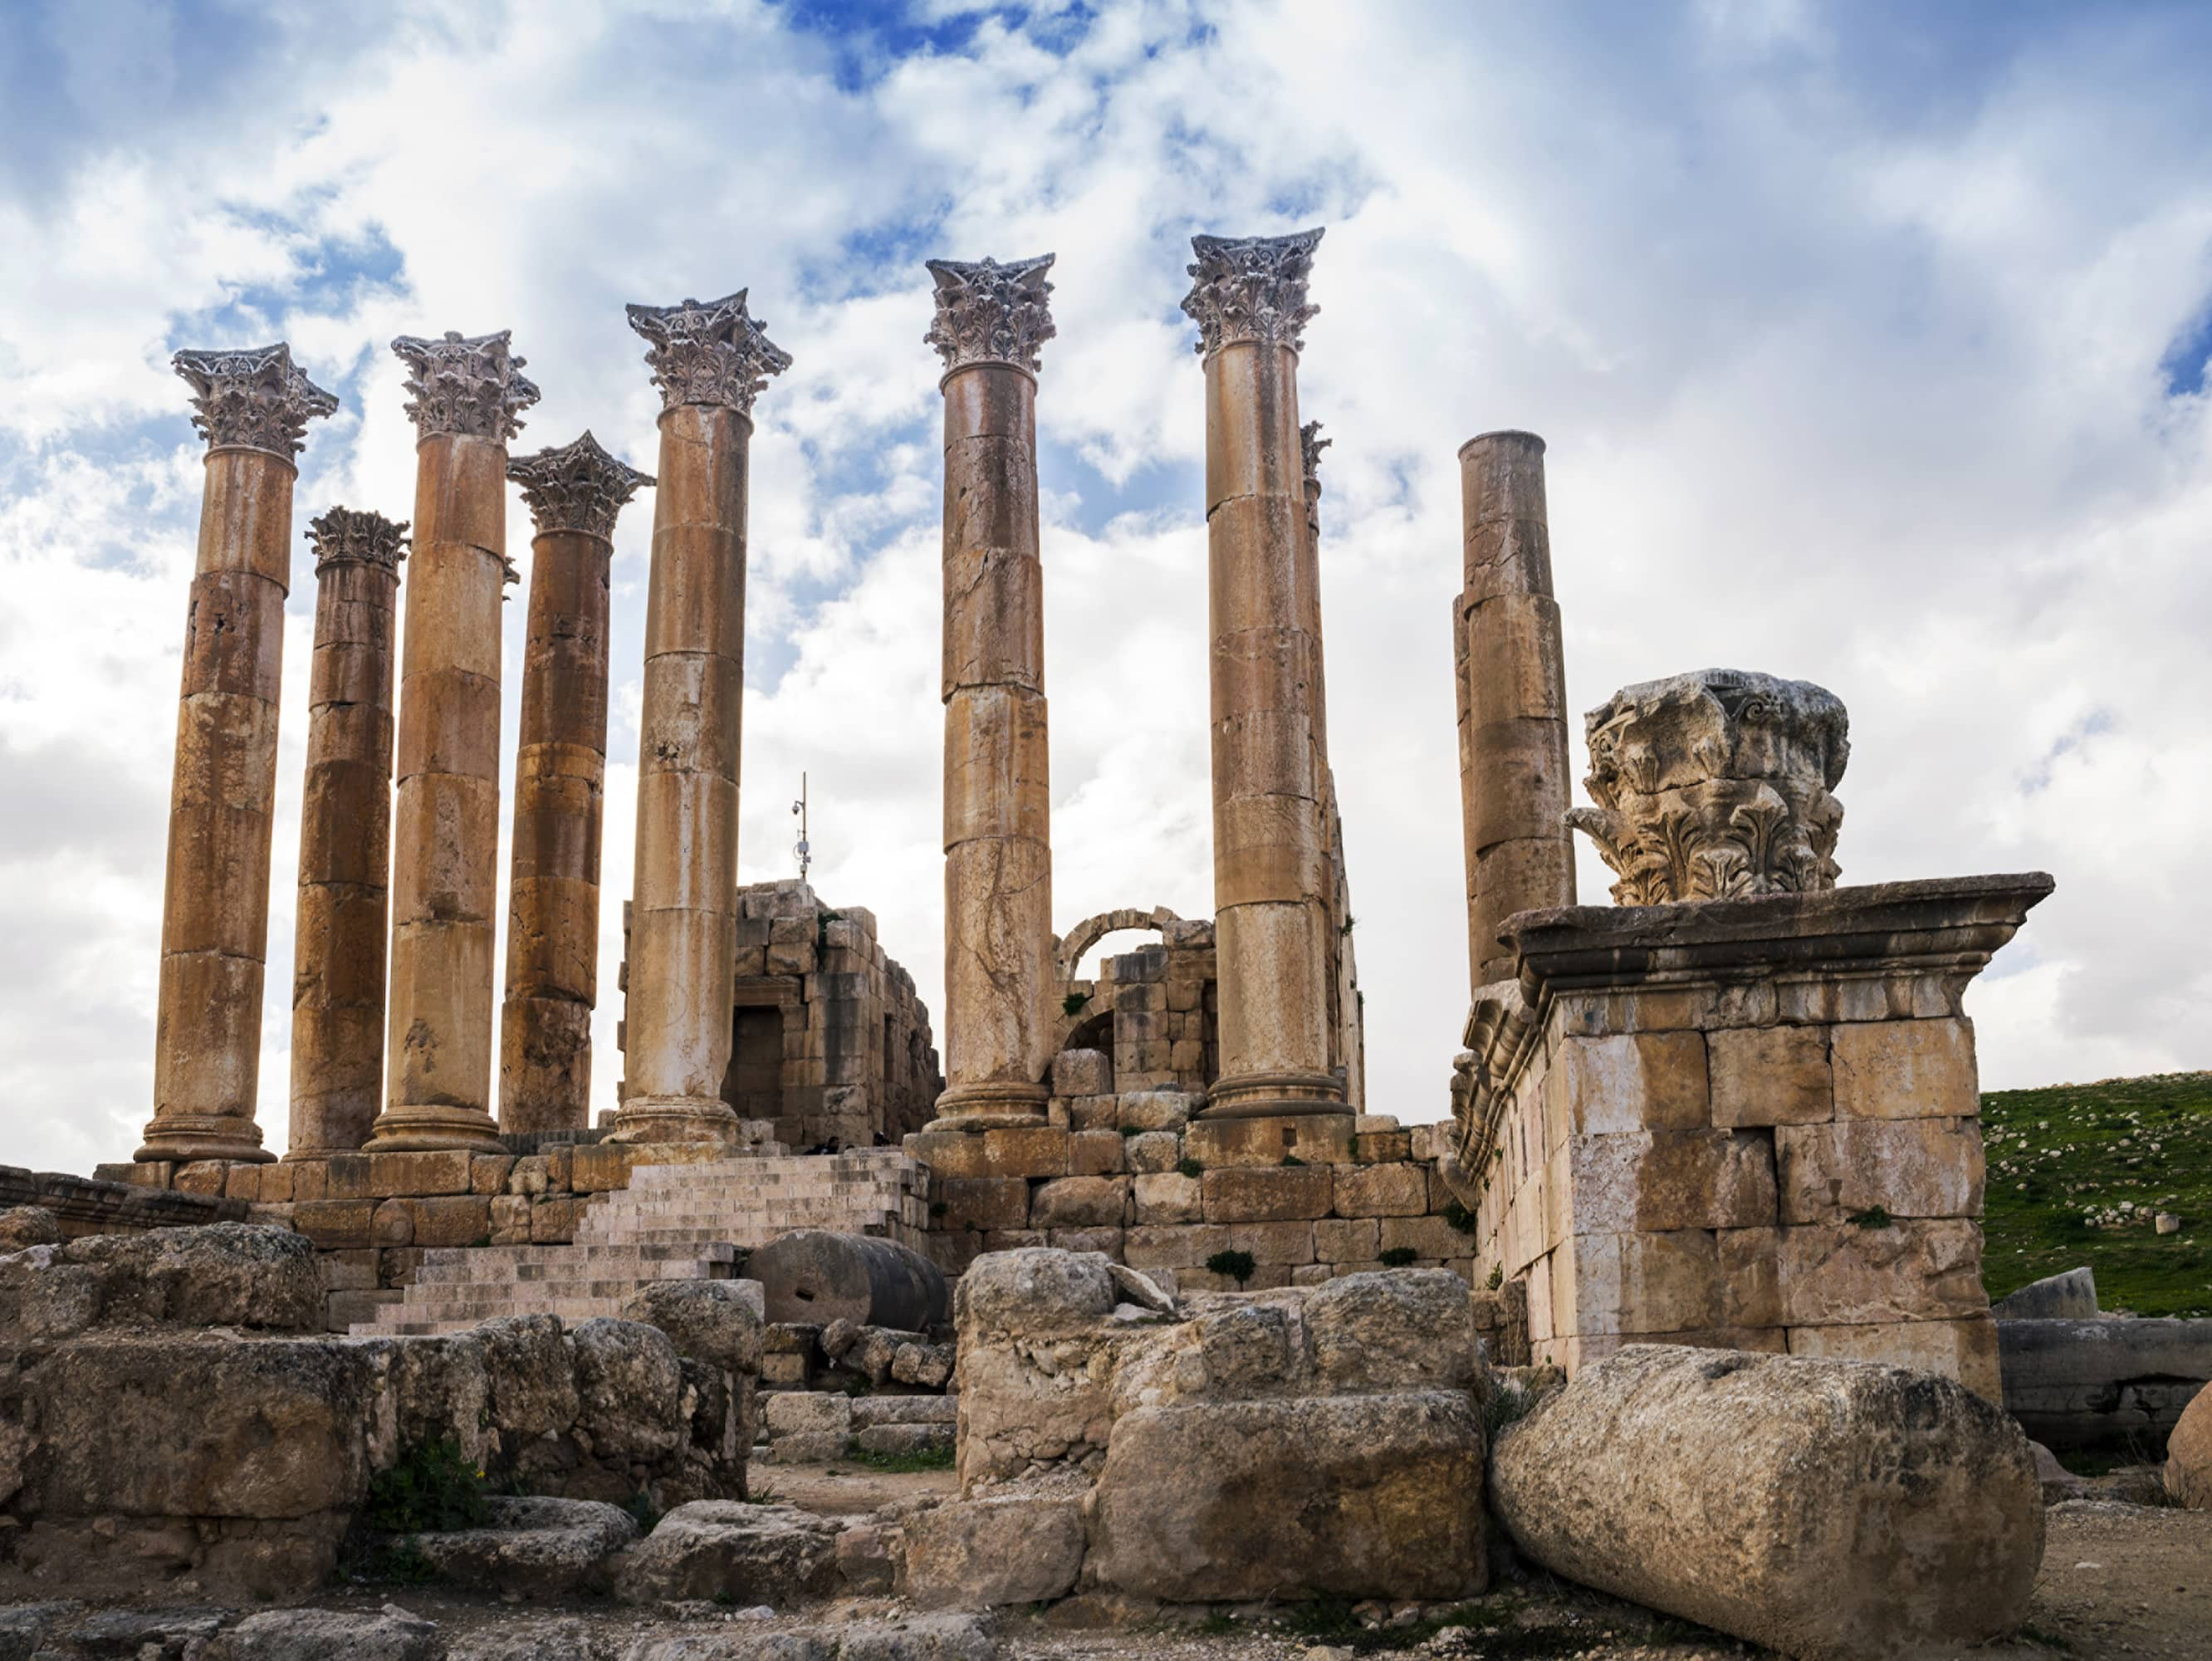 DISCOVER THE ROMAN RUINS OF JERASH